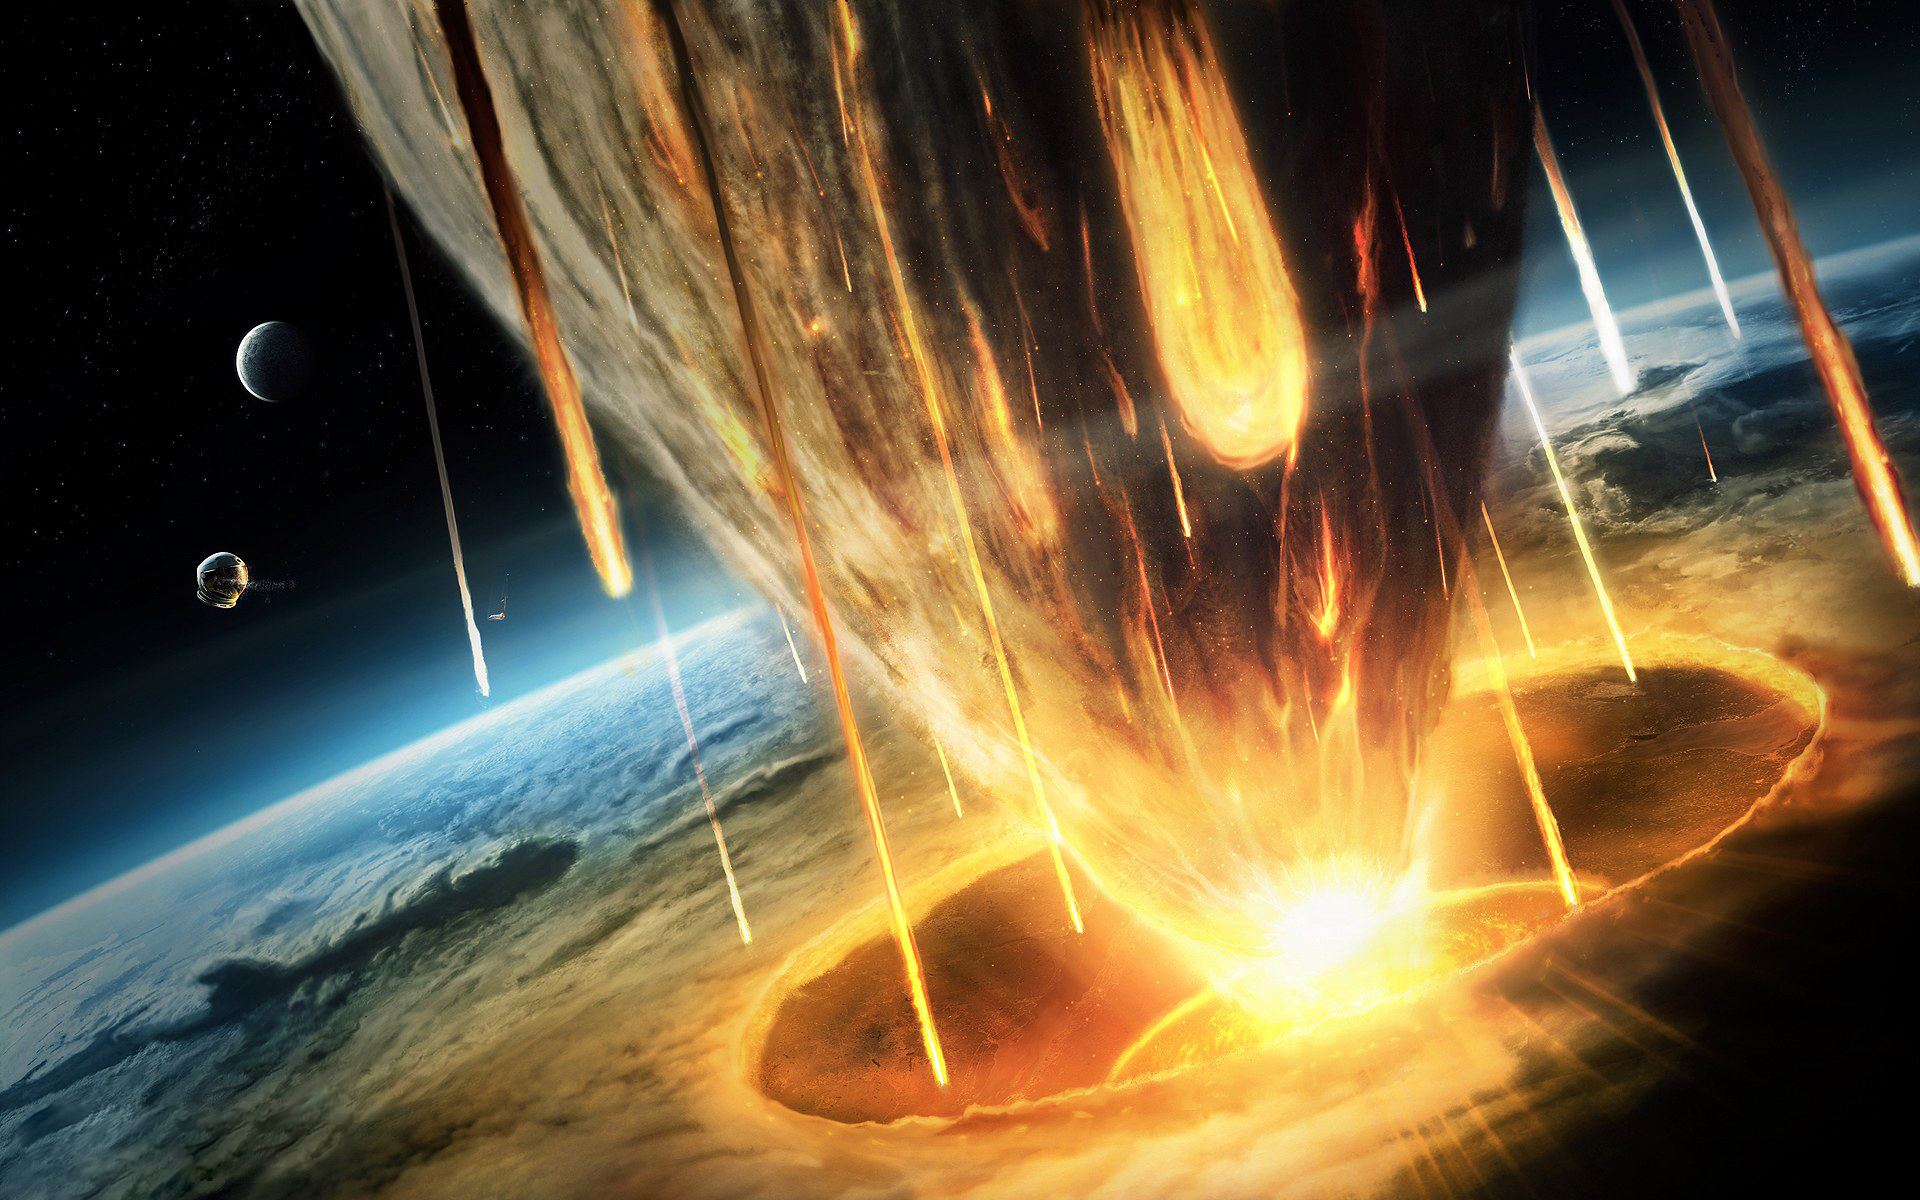 asteroids in space and the claim of impendig collision with planet earth Numerous recent blogs and web postings are erroneously claiming that an asteroid will impact earth, sometime between sept 15 and 28, 2015 on one of those dates, as.